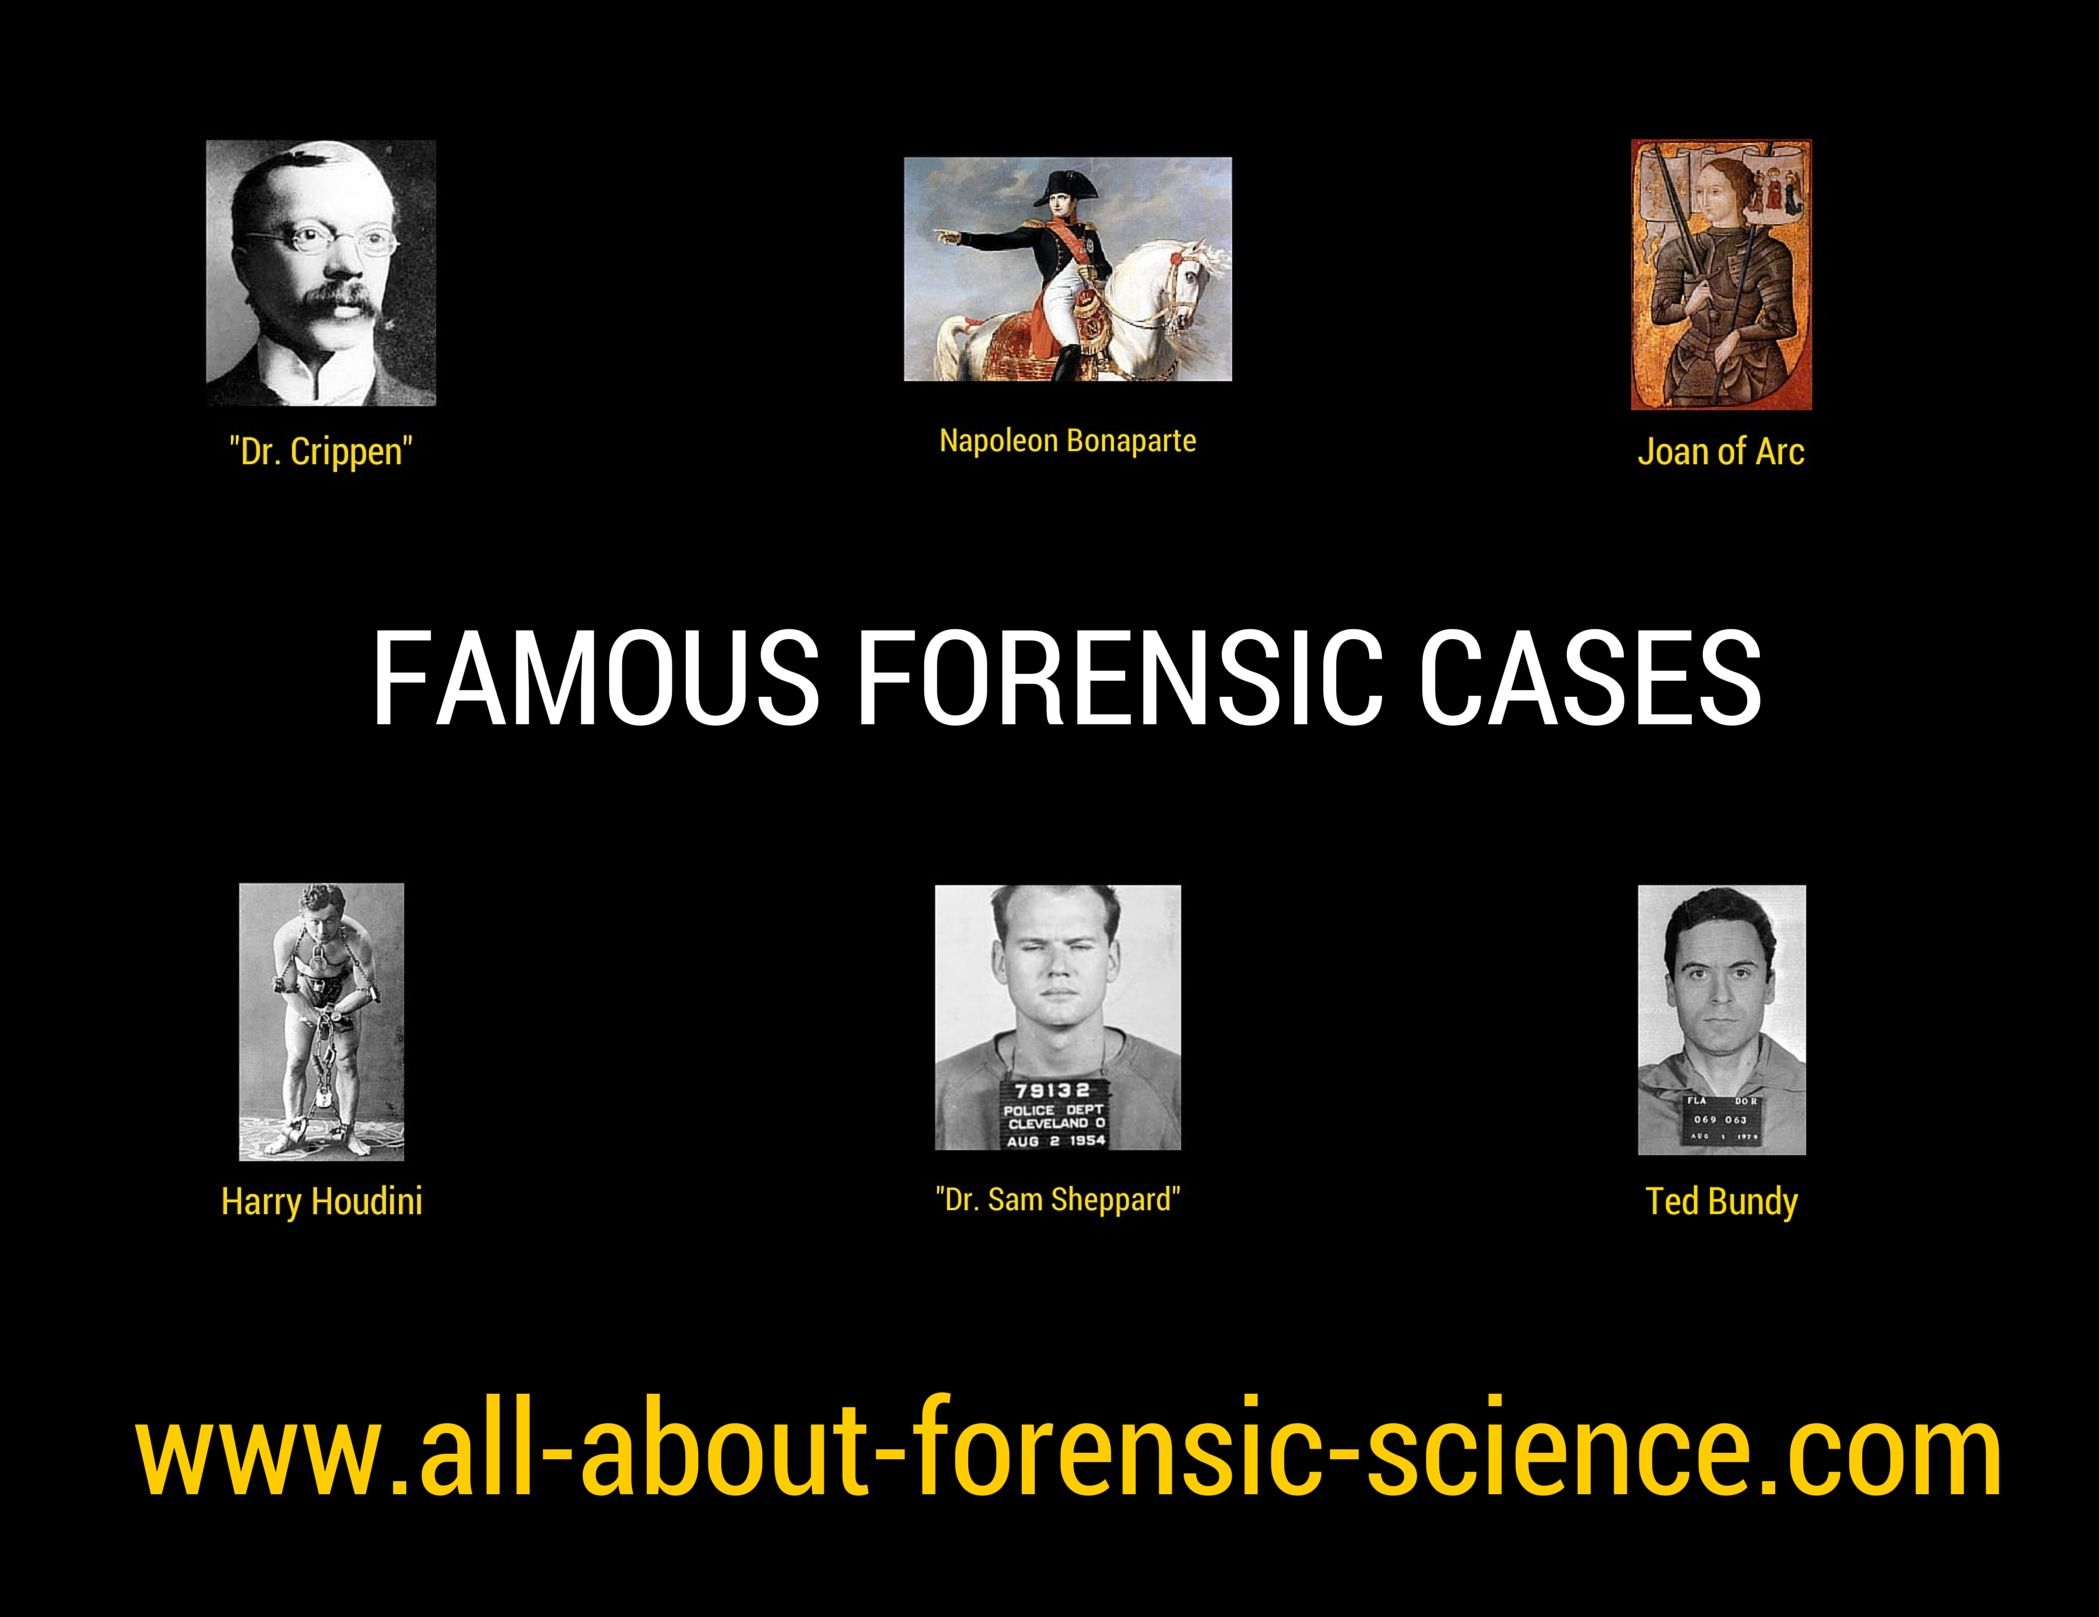 an analysis of what i wanted to learn about forensic science Basic principles of forensic chemistry is designed to develop  part i lays the scientiÞ c foundation that the examiner needs to understand the science of analysis the information in part i reviews basic principles of chemistry beginning with atomic  negatively for this reason, i wanted the students of forensic chemistry to learn to.